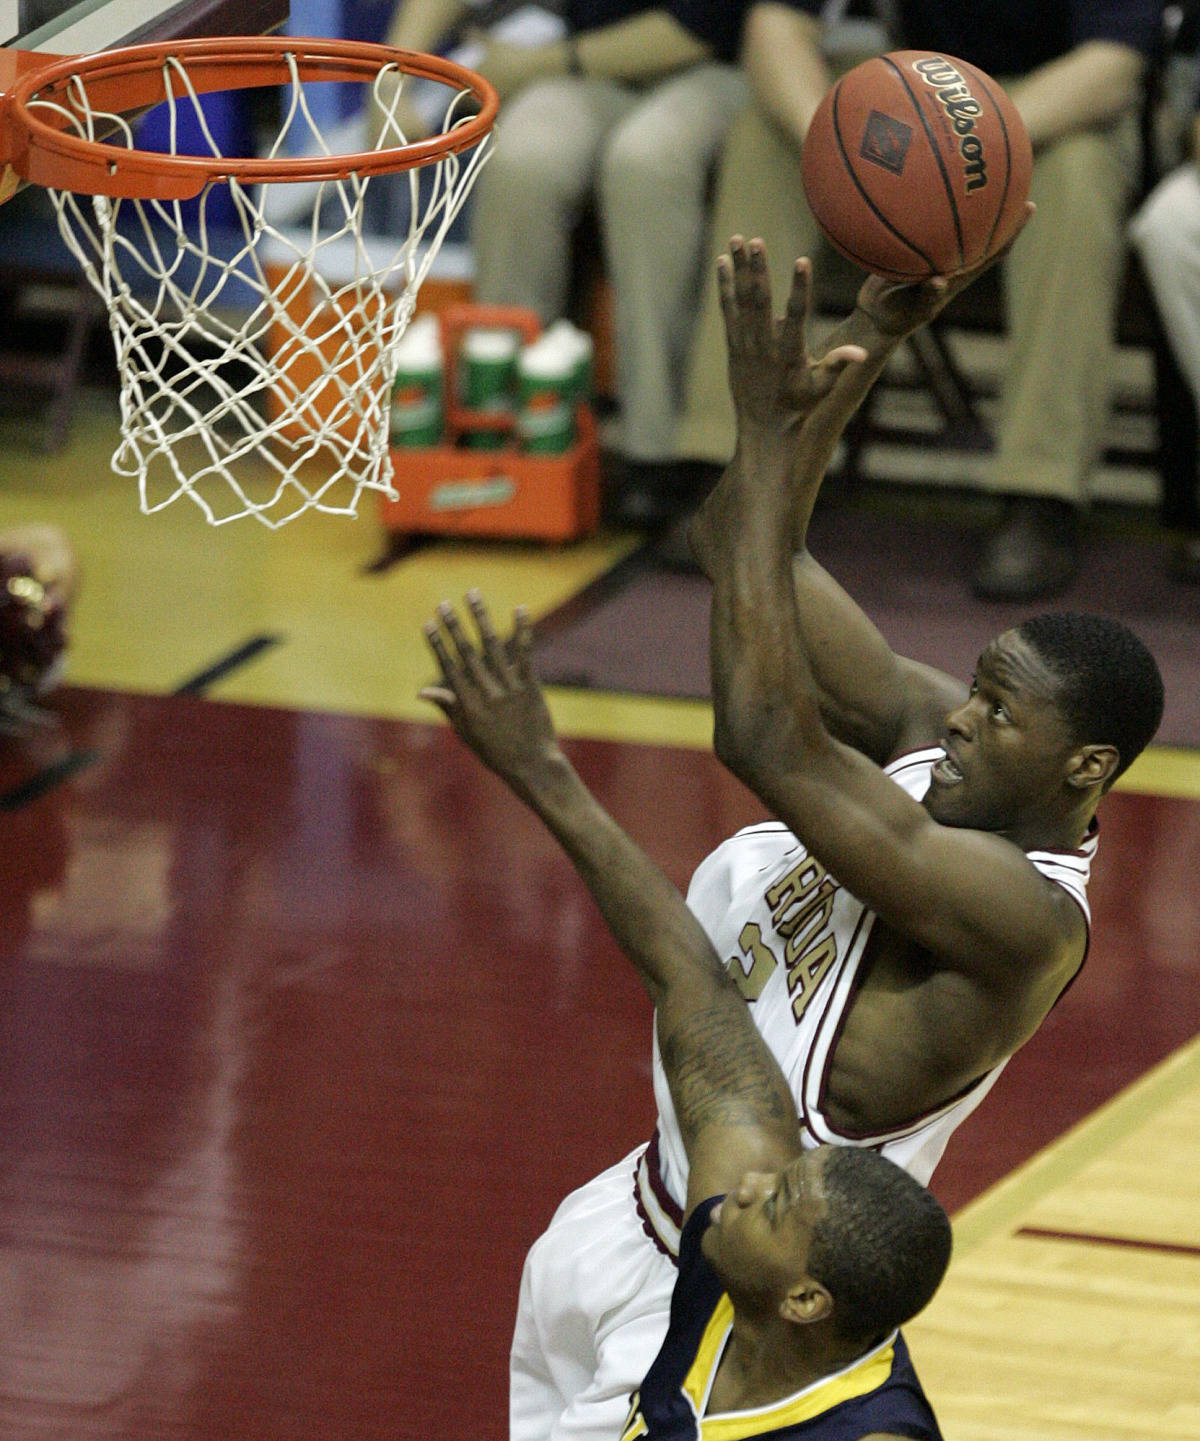 Florida State's Al Thornton scores over the defense of Toledo's Florentino Valencia. (AP Photo/Steve Cannon)